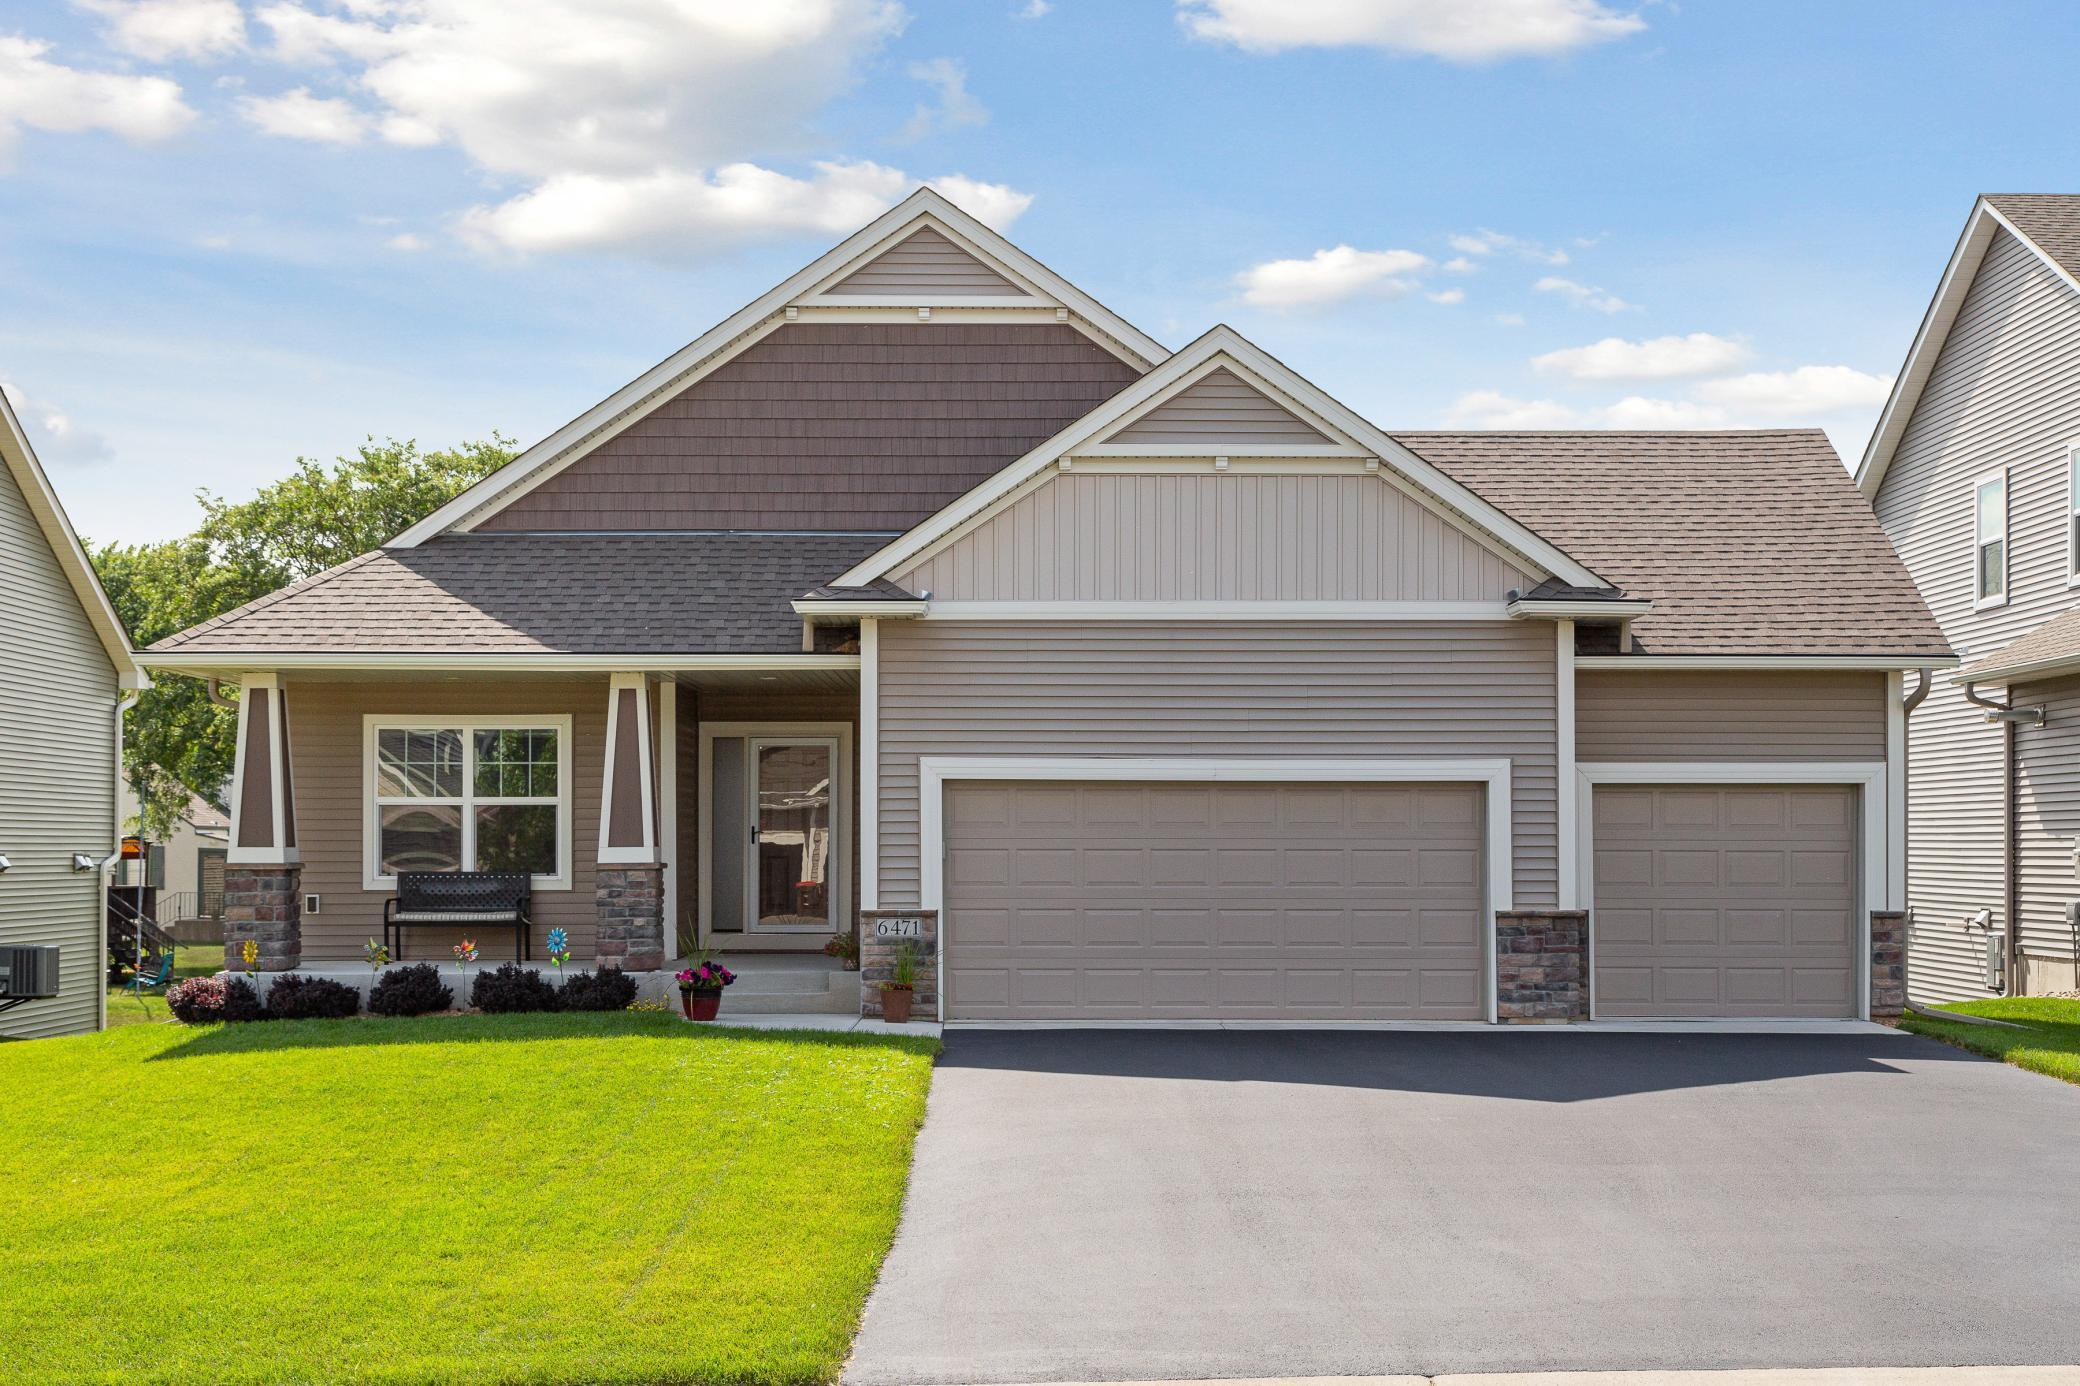 6471 Crosby Avenue Property Photo - Inver Grove Heights, MN real estate listing